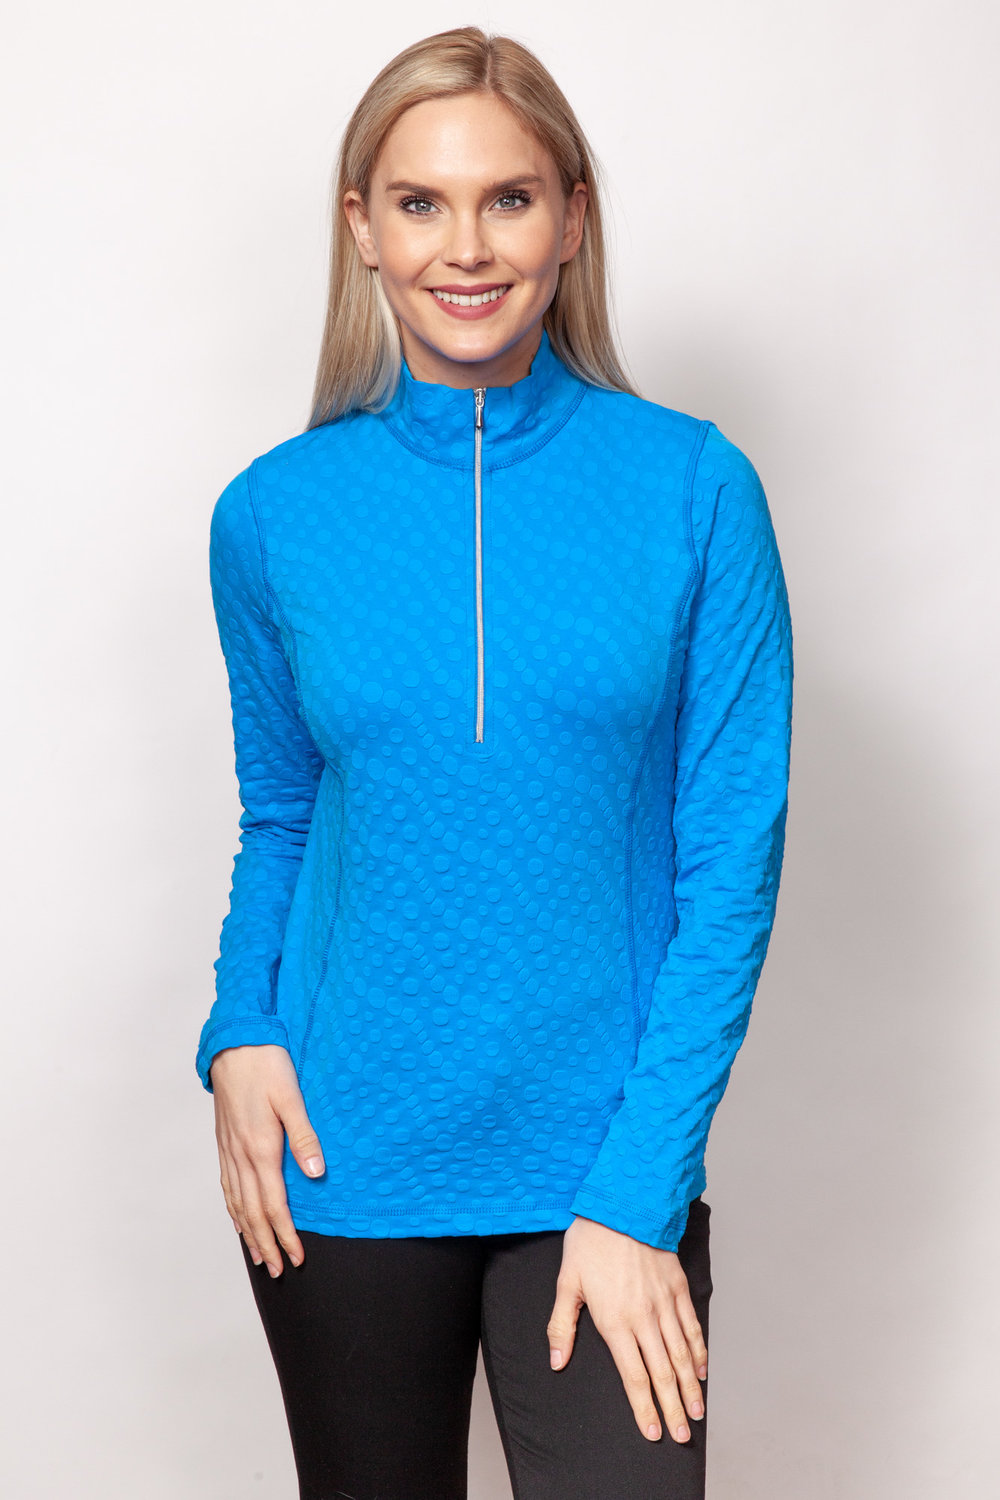 Copy of Style # 48738-19, p11 <br/>Dots Sport Jacq'd <br/>Colors: Azure + 4 others